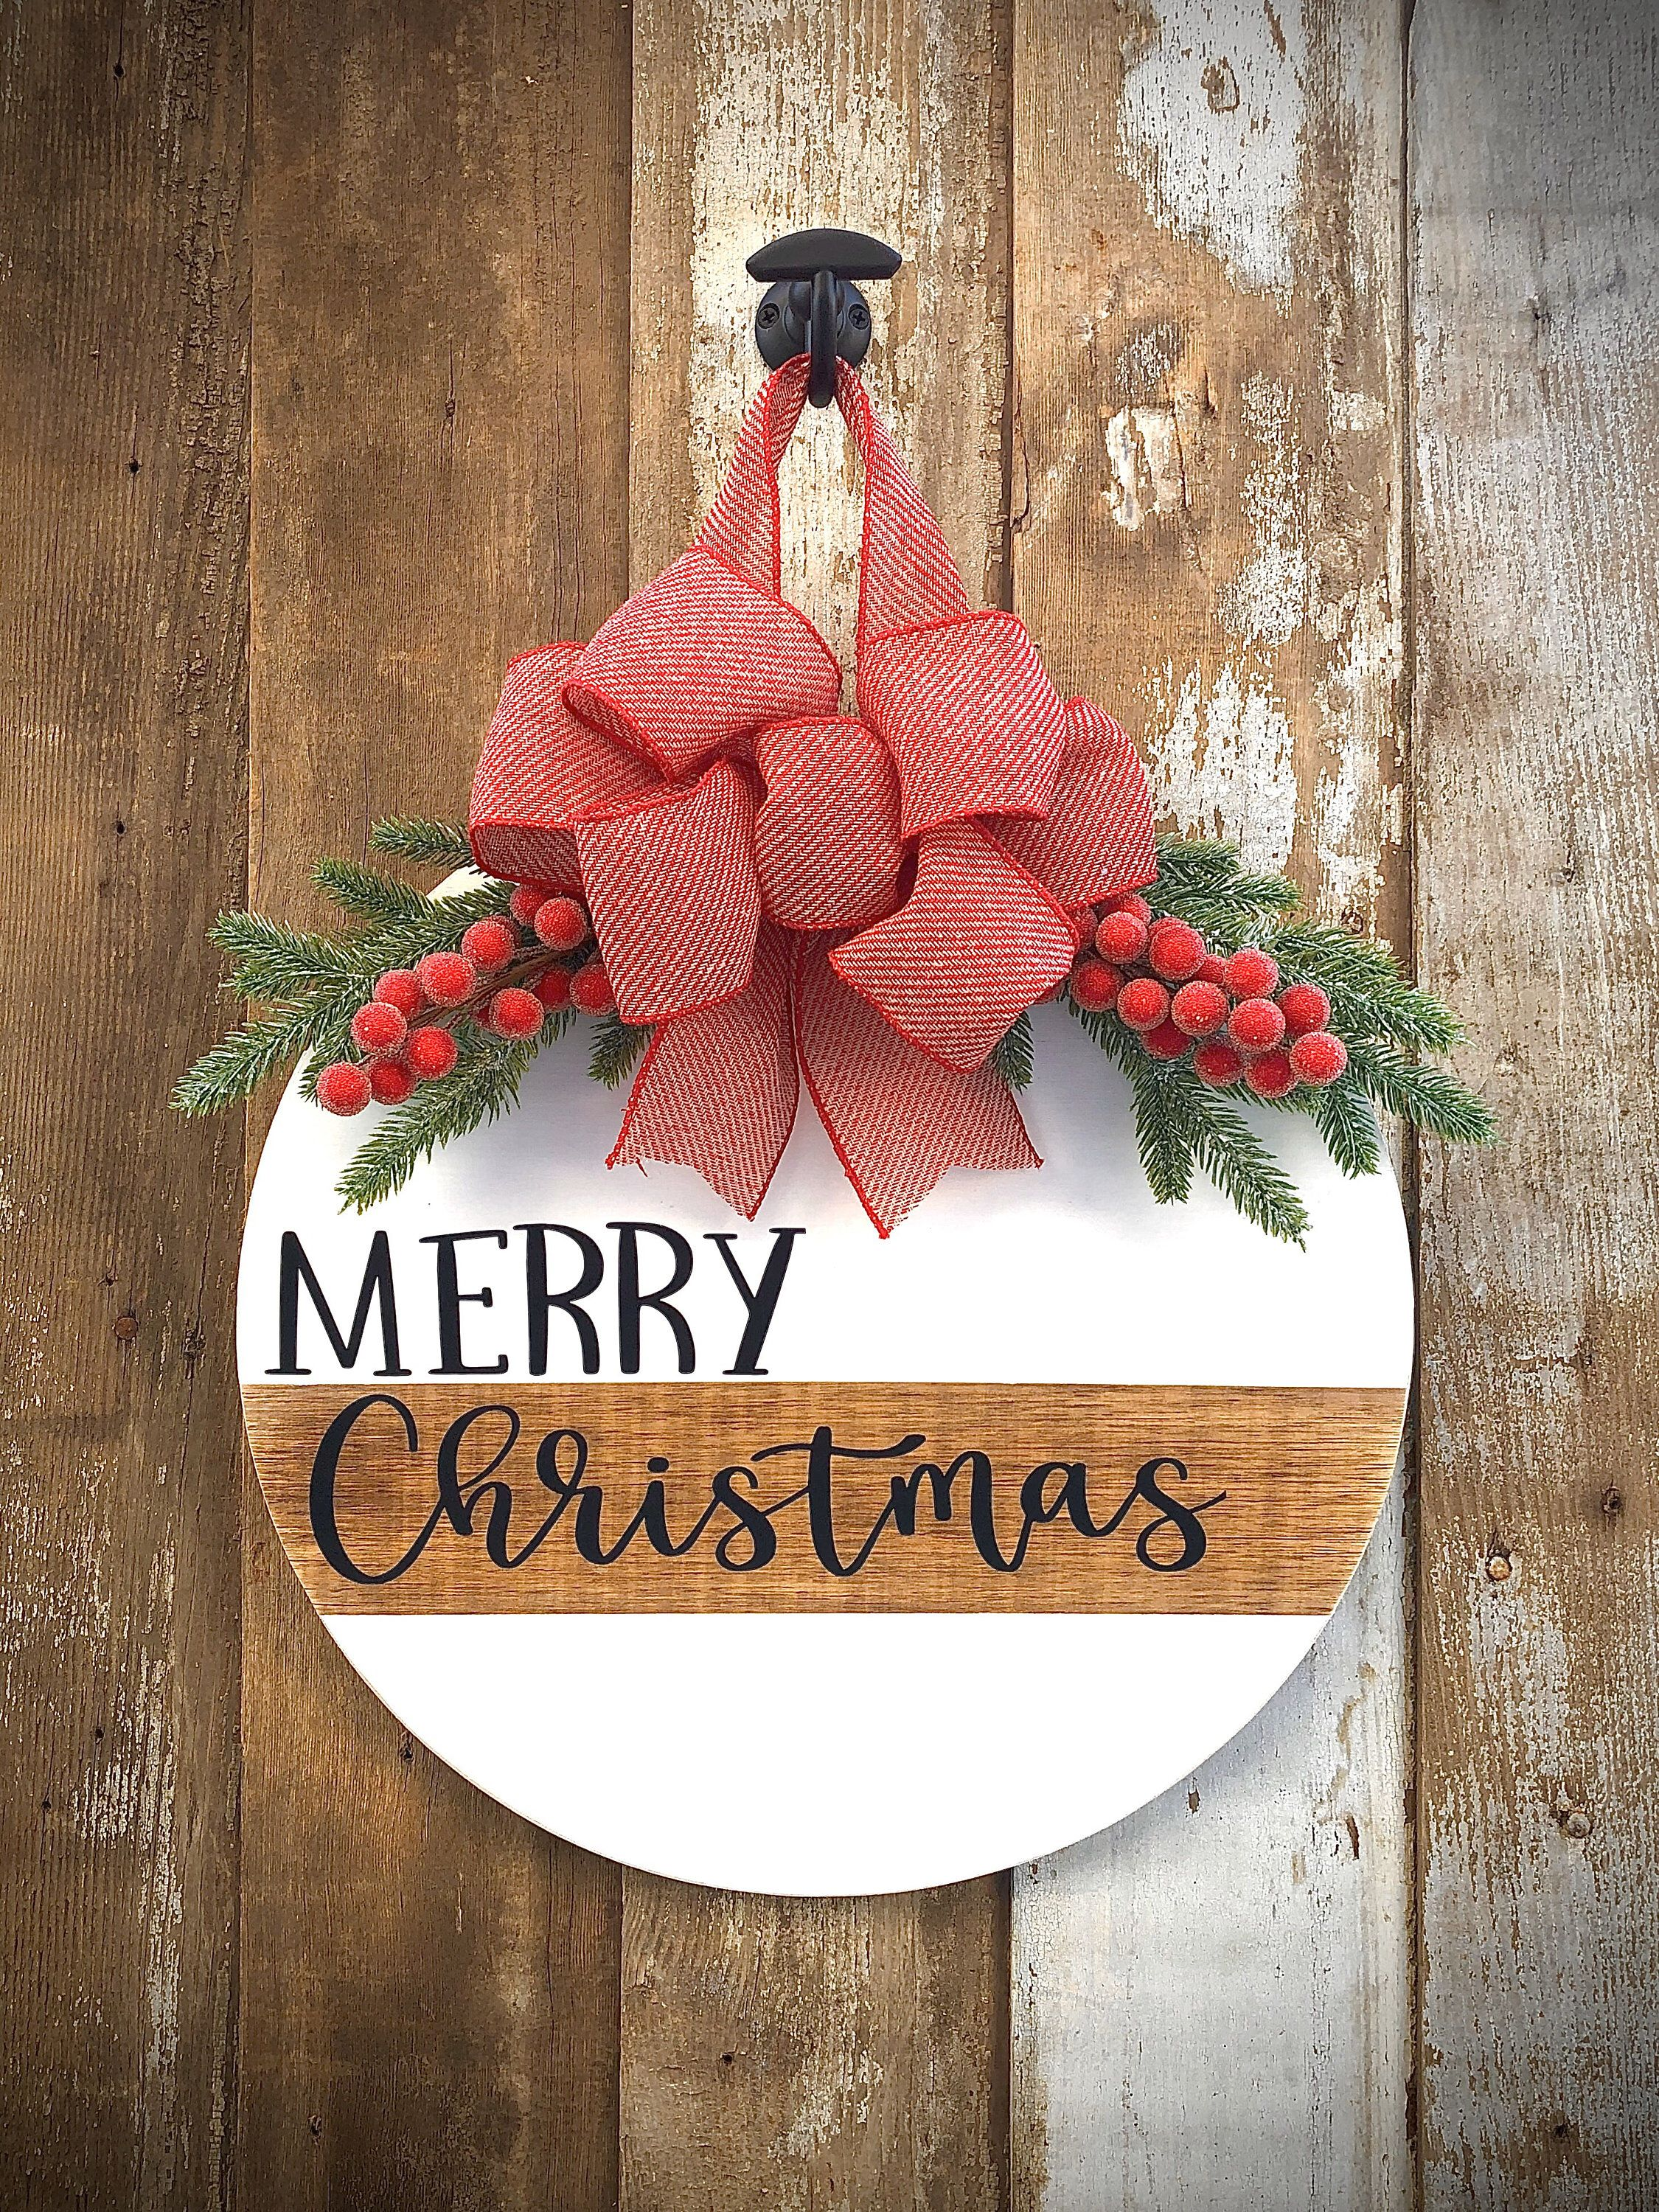 Merry Christmas Door Hanger Front Door Sign Christmas Door Wreath Christmas Door Decor Round Christmas Sign Merry Christmas Christmas Christmas Door Hanger Christmas Door Decorations Merry Christmas Sign